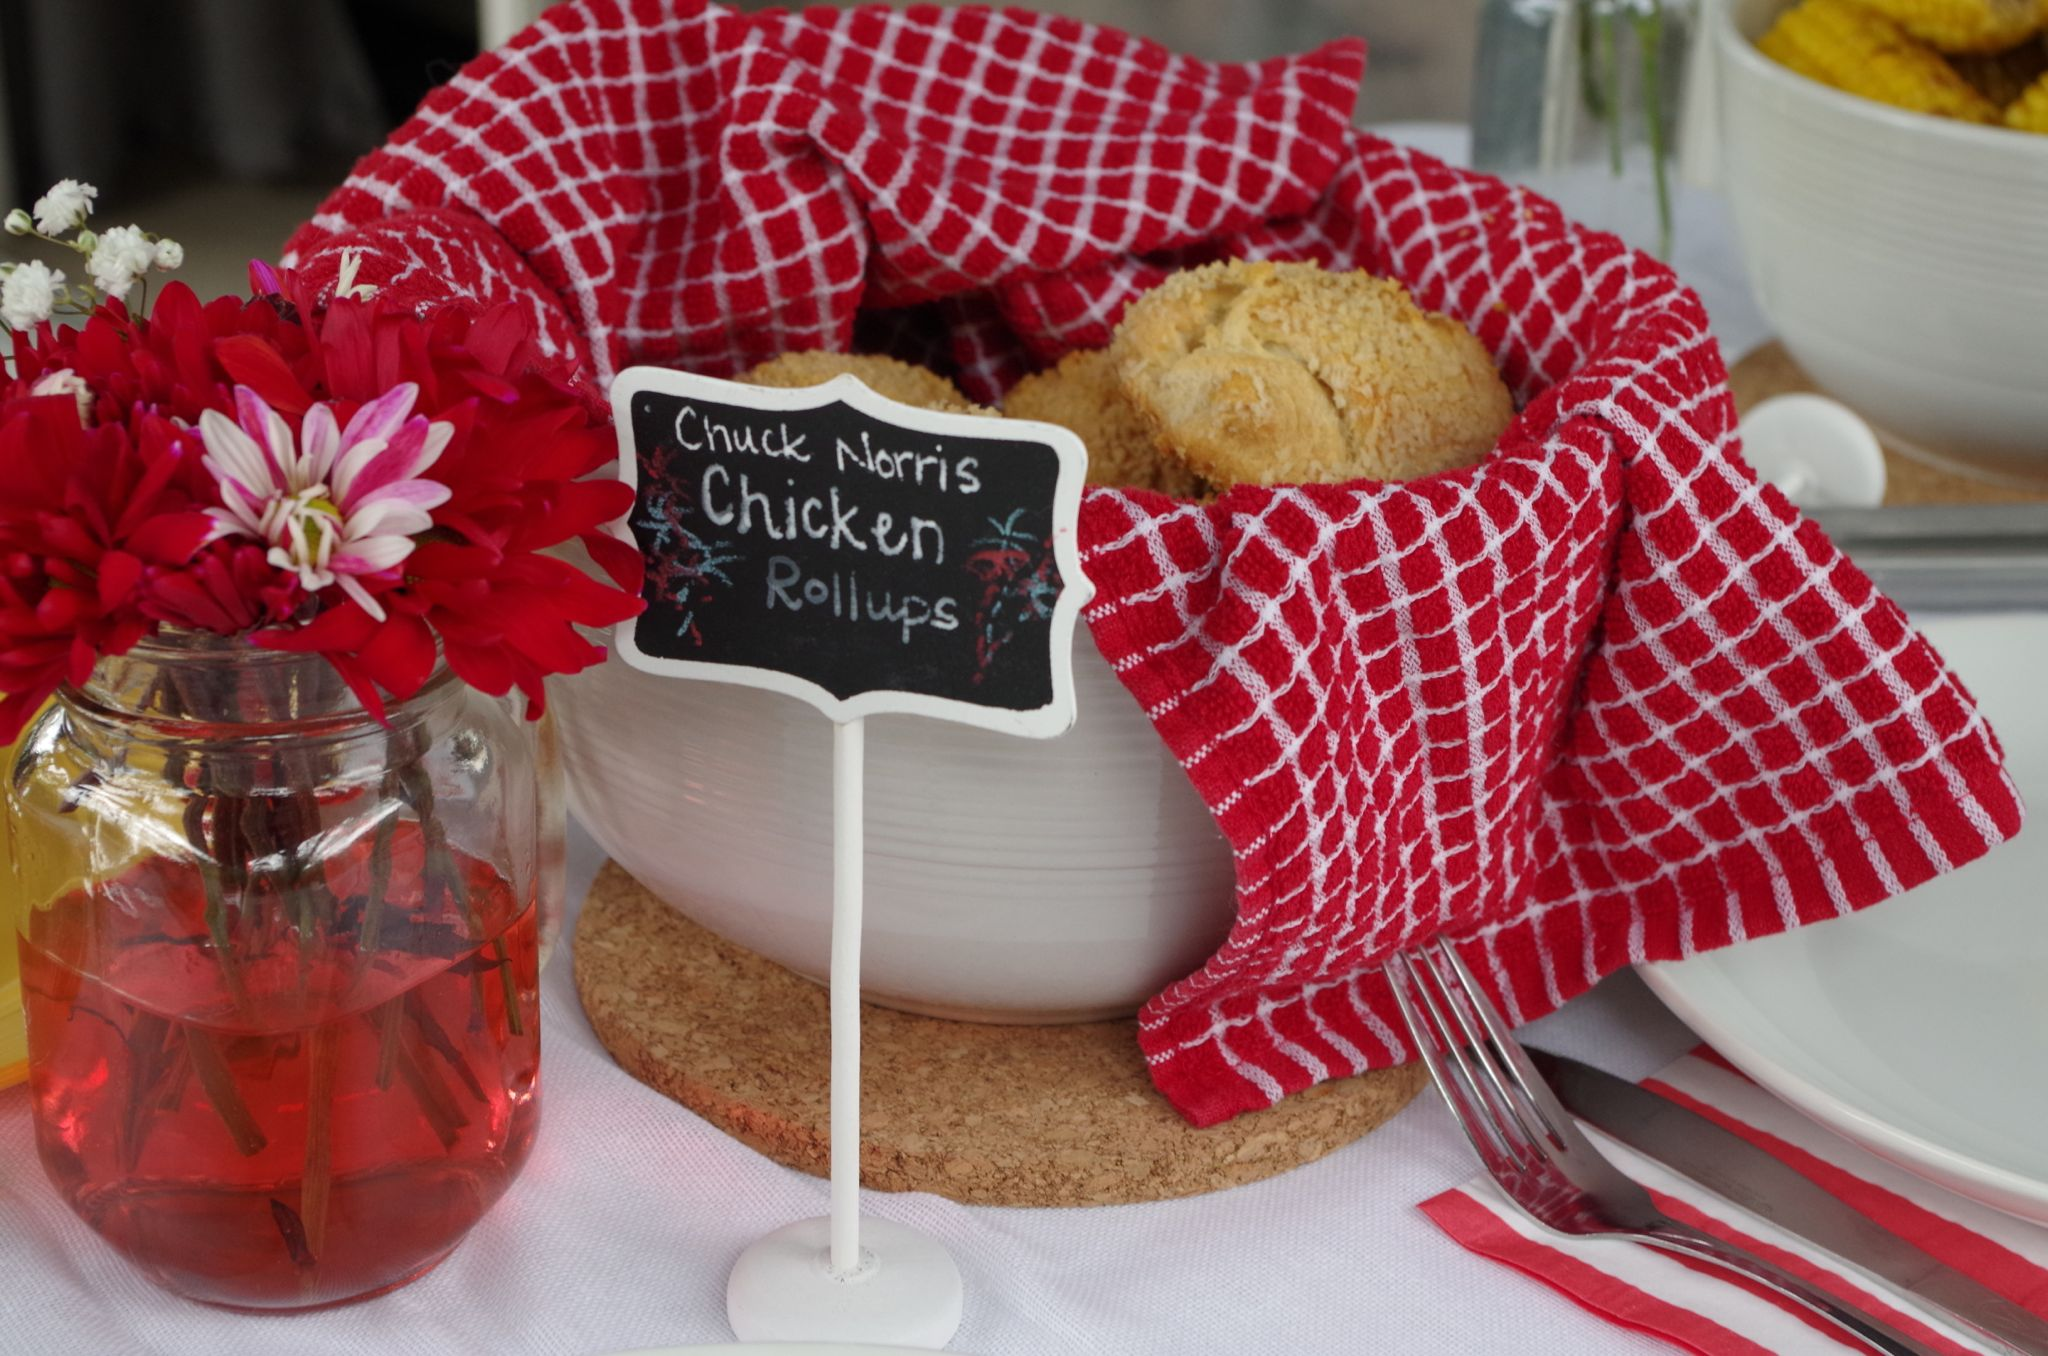 White Chalkboard food sign, red flowers, and bowl of chicken rollups with red and white checked napkin